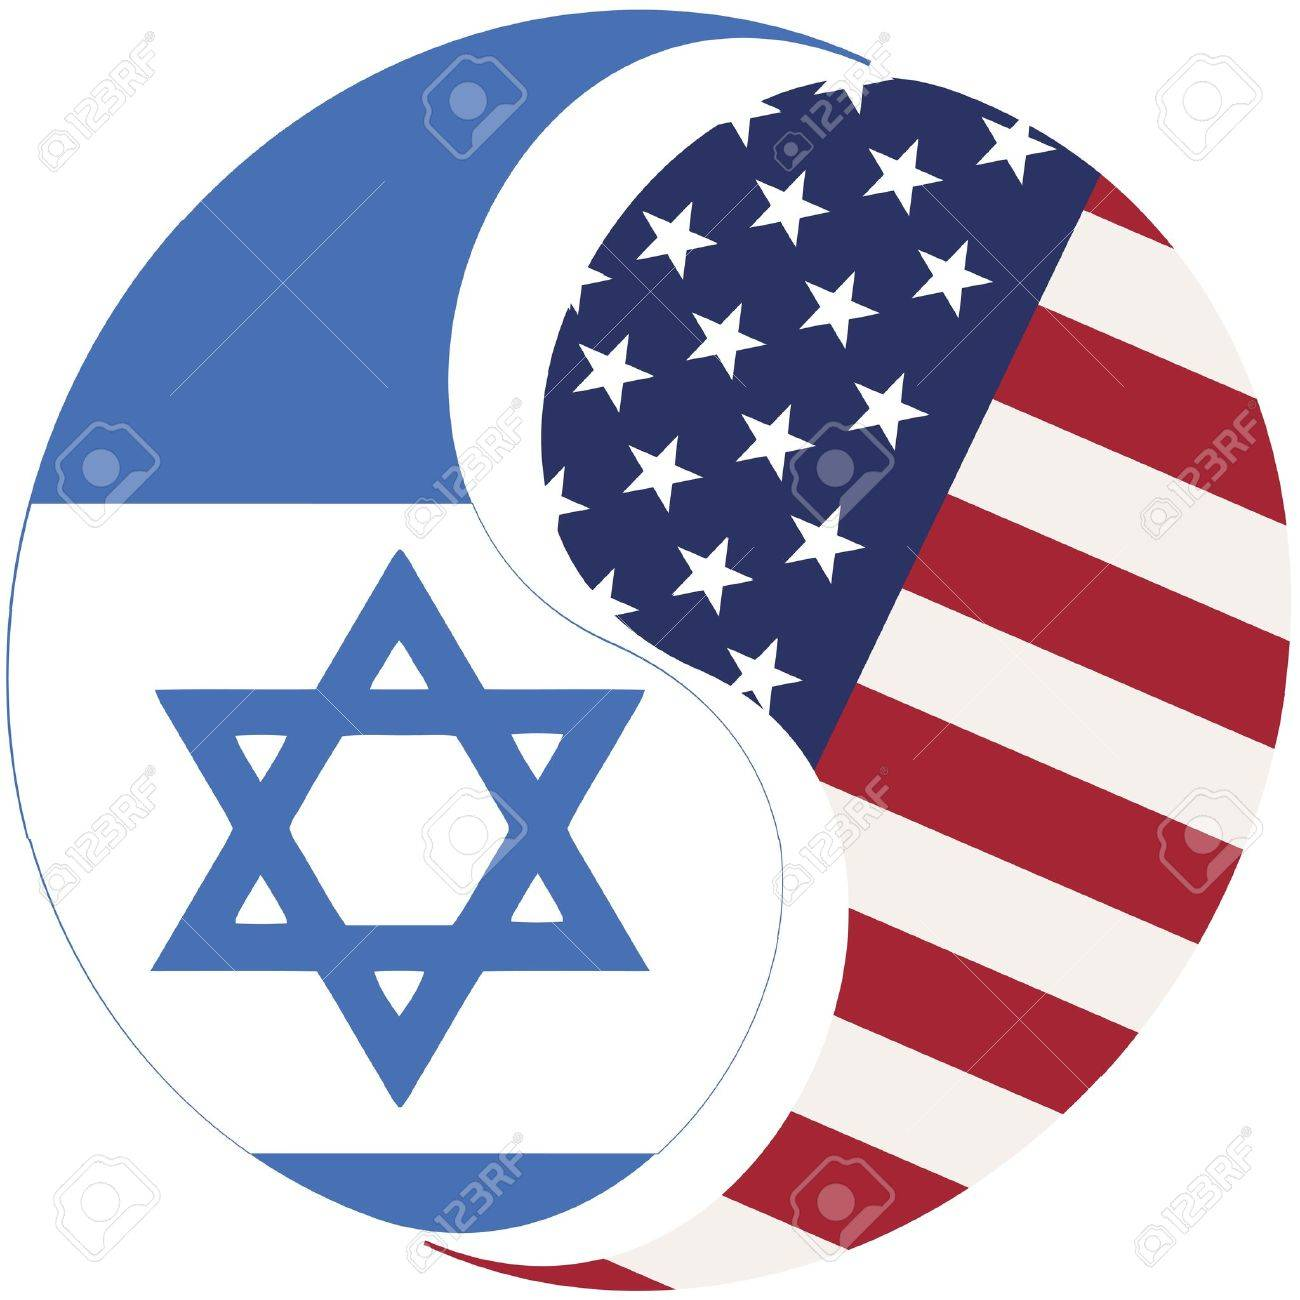 Usa and israel symbol for the relationship between the two usa and israel symbol for the relationship between the two countries stock photo 12835955 biocorpaavc